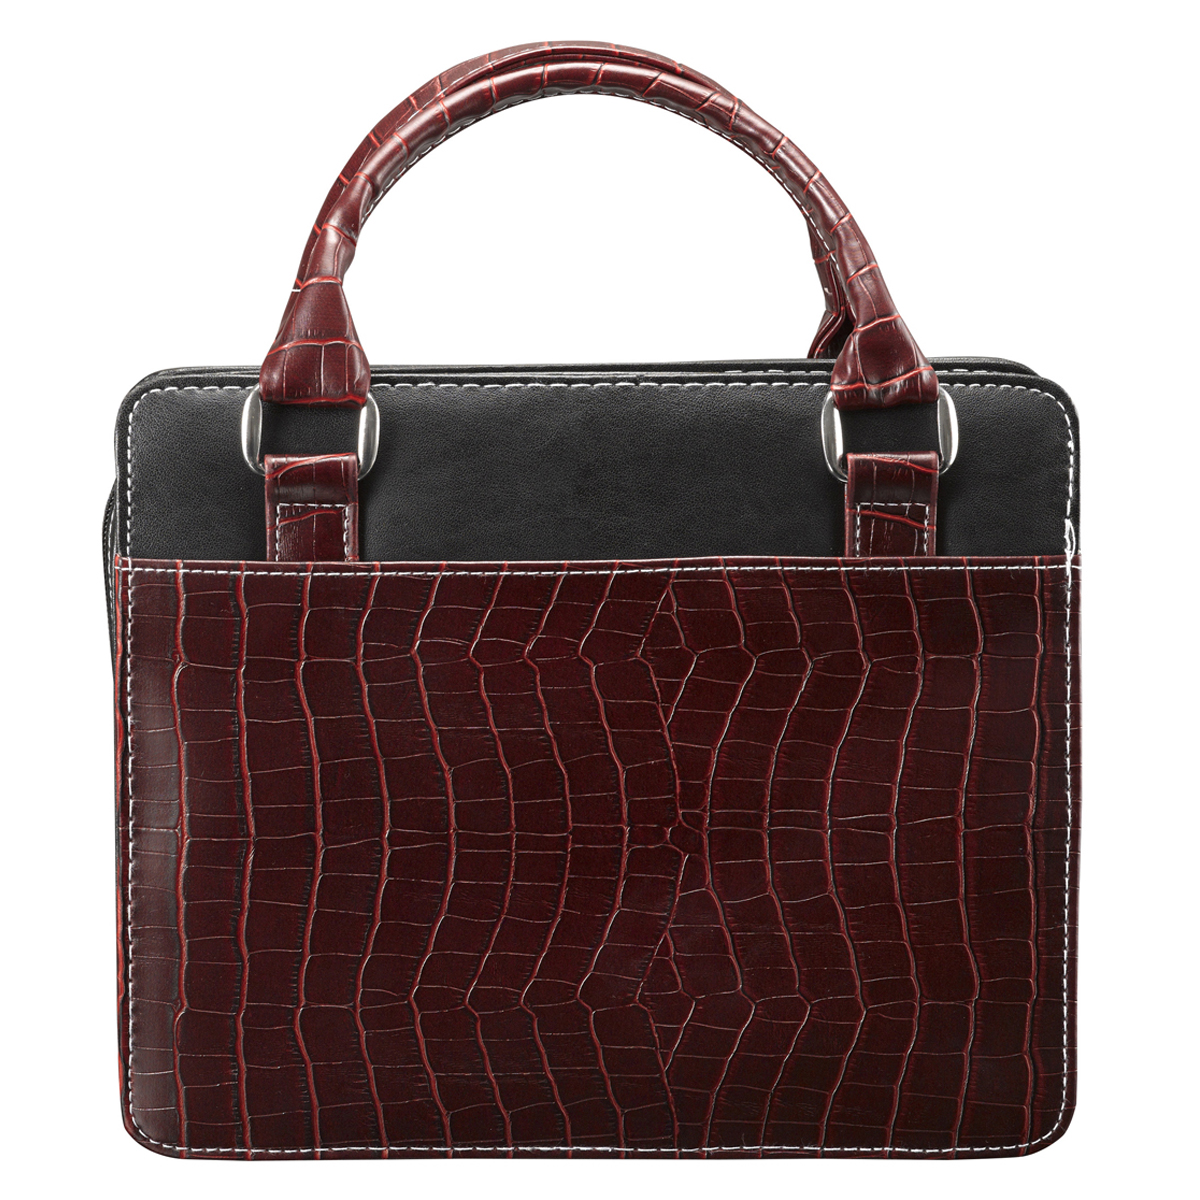 Purse-Style-with-Crocodile-Embossing-in-Burgundy-Bible-Cover-Size-Medium thumbnail 2